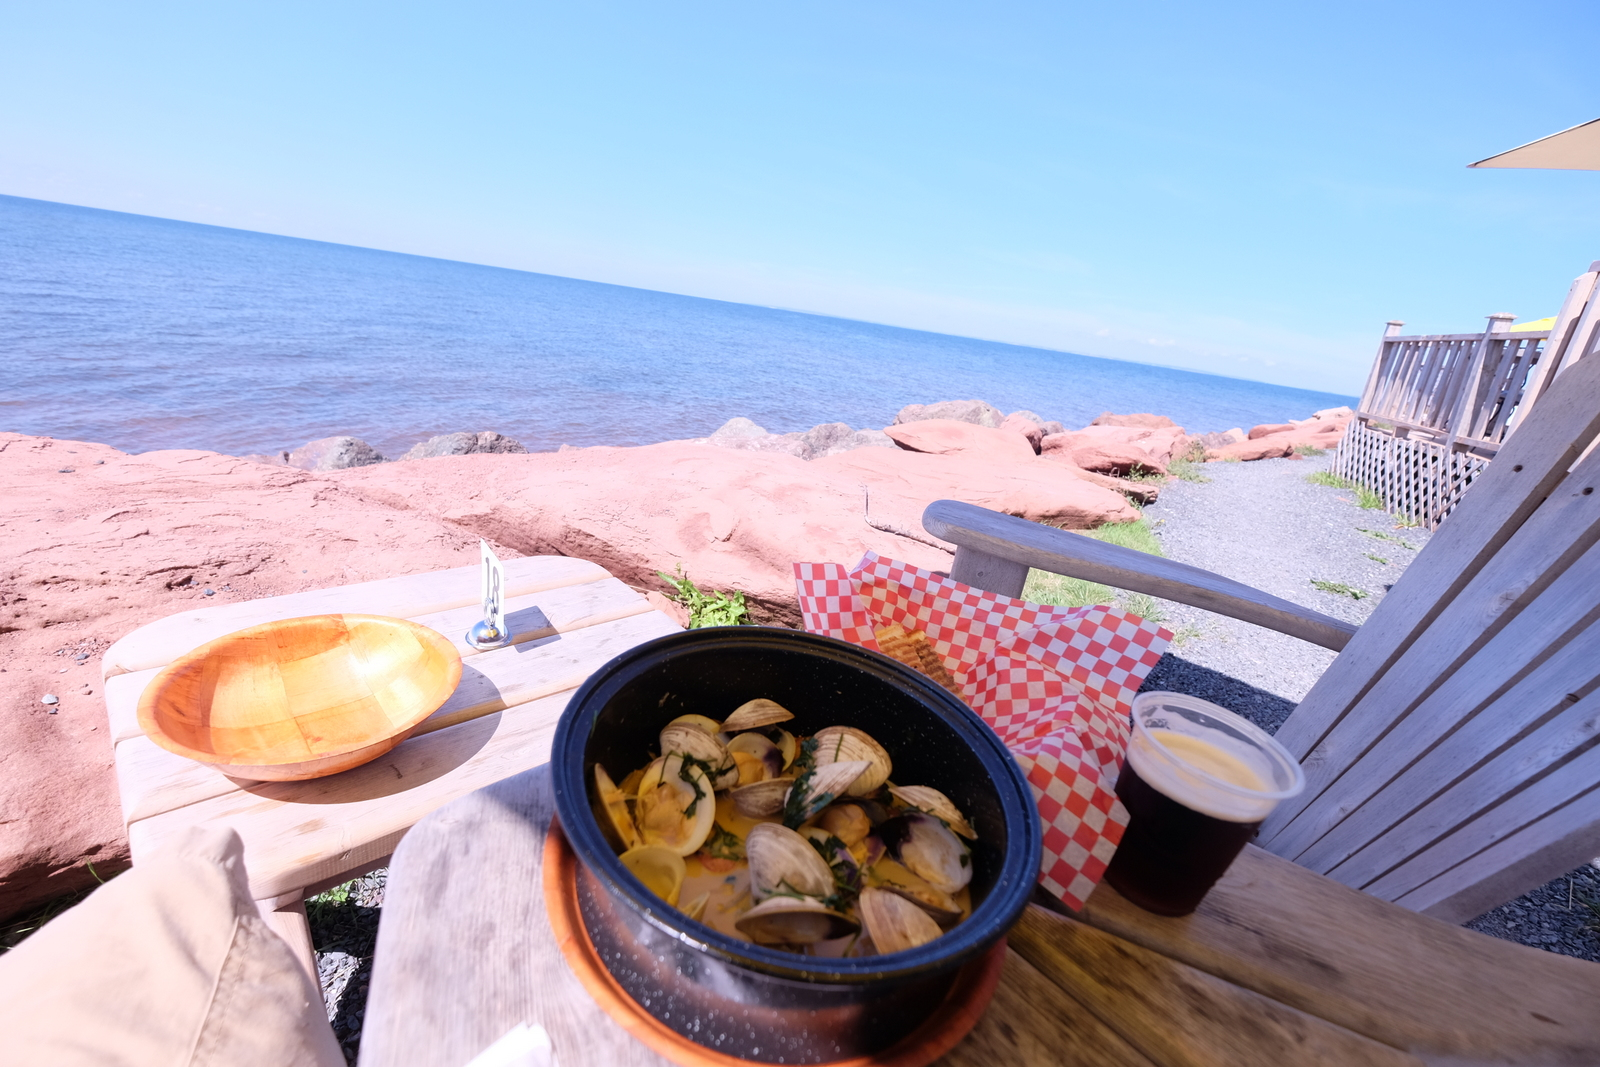 Point Prim serves up lovely chowder in a beautiful PEI setting. - JIM BYERS PHOTO